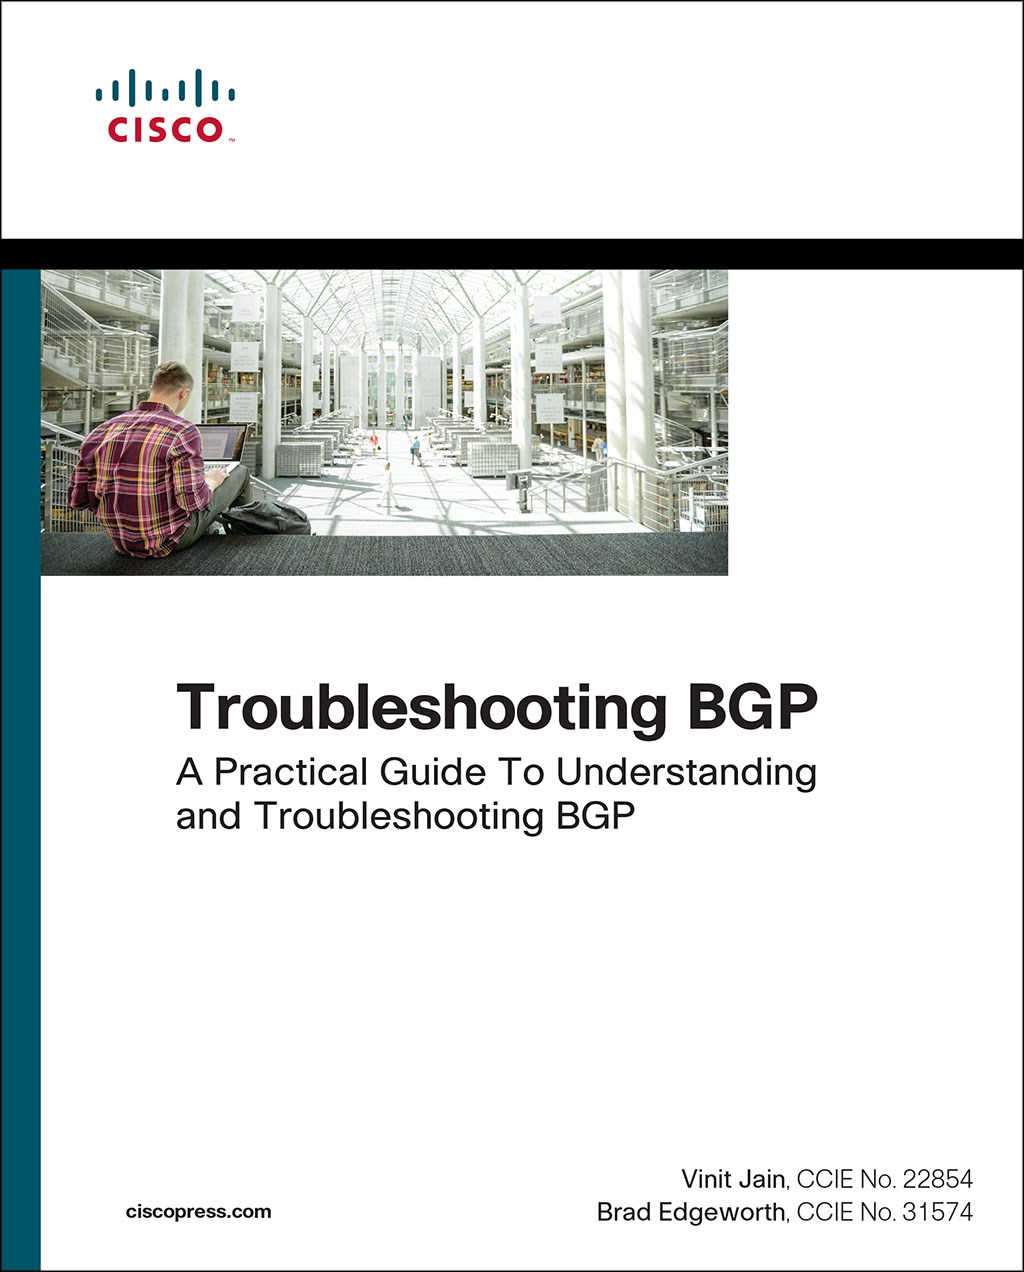 Troubleshooting Bgp: Troubleshooting BGP: A Practical Guide To Understanding